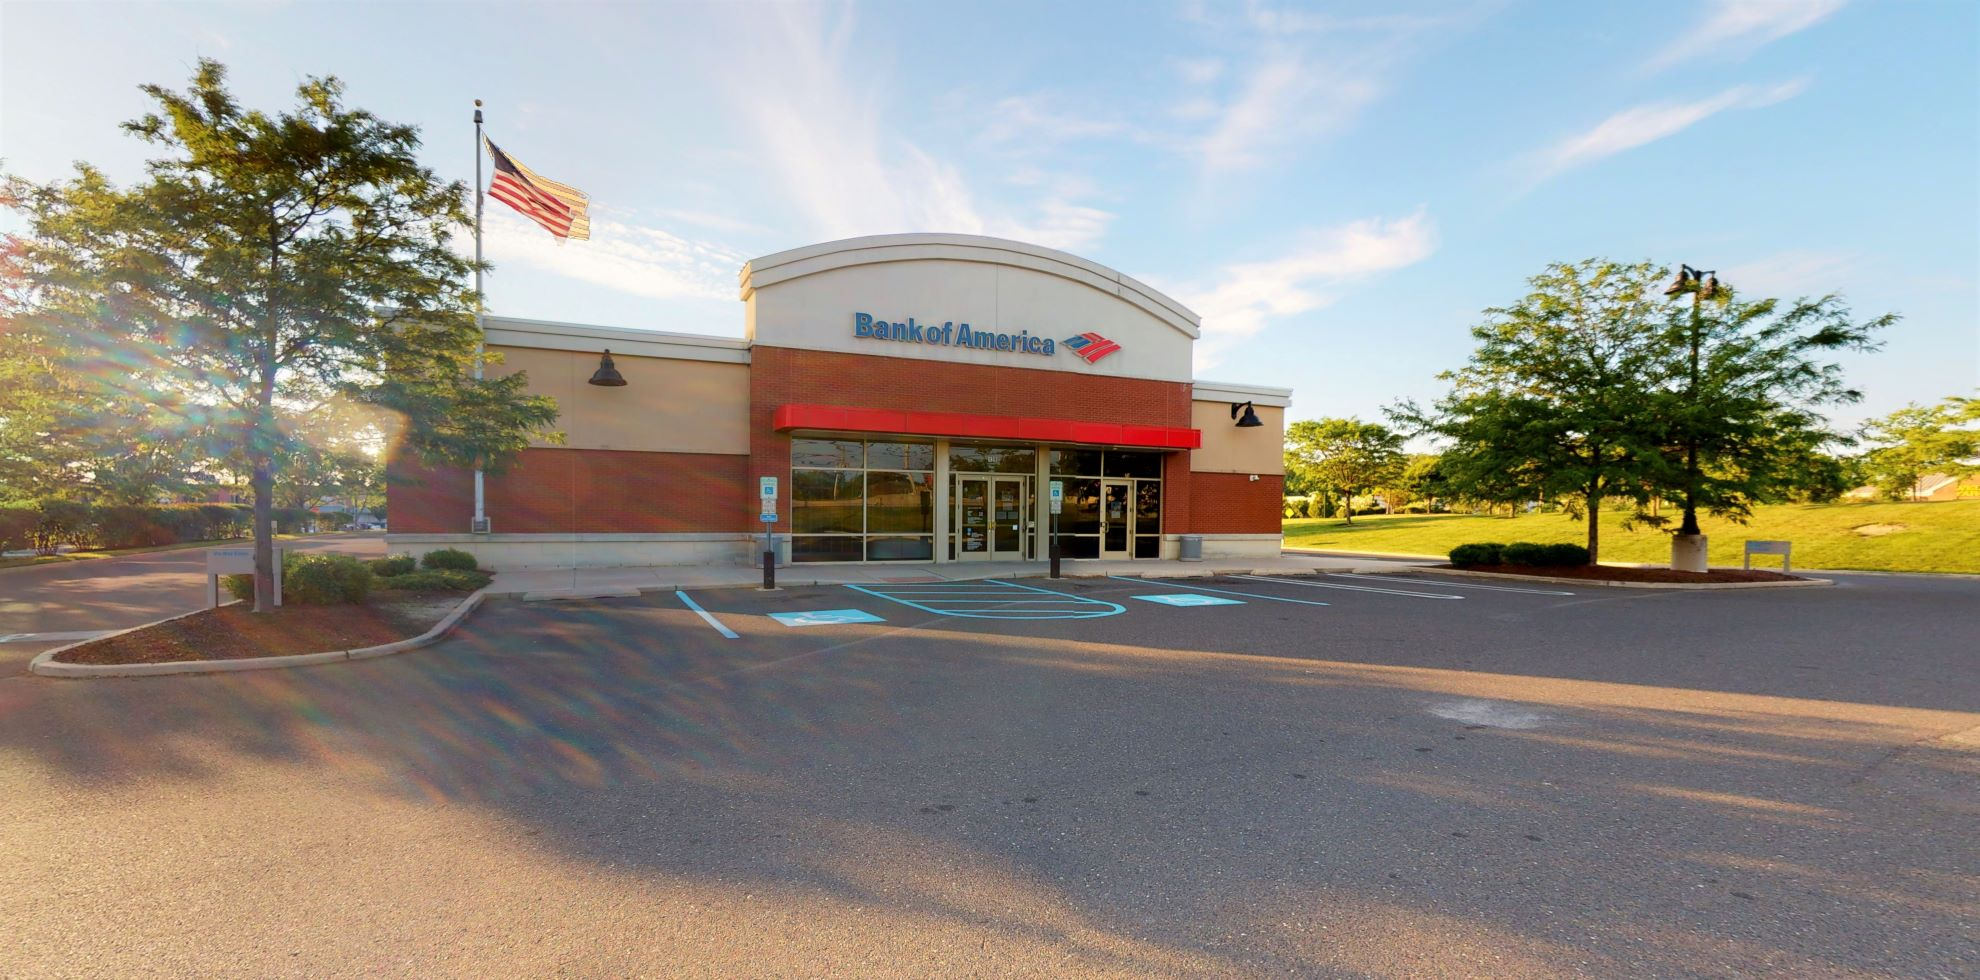 Bank of America financial center with drive-thru ATM | 139 Route 130 S, Cinnaminson, NJ 08077